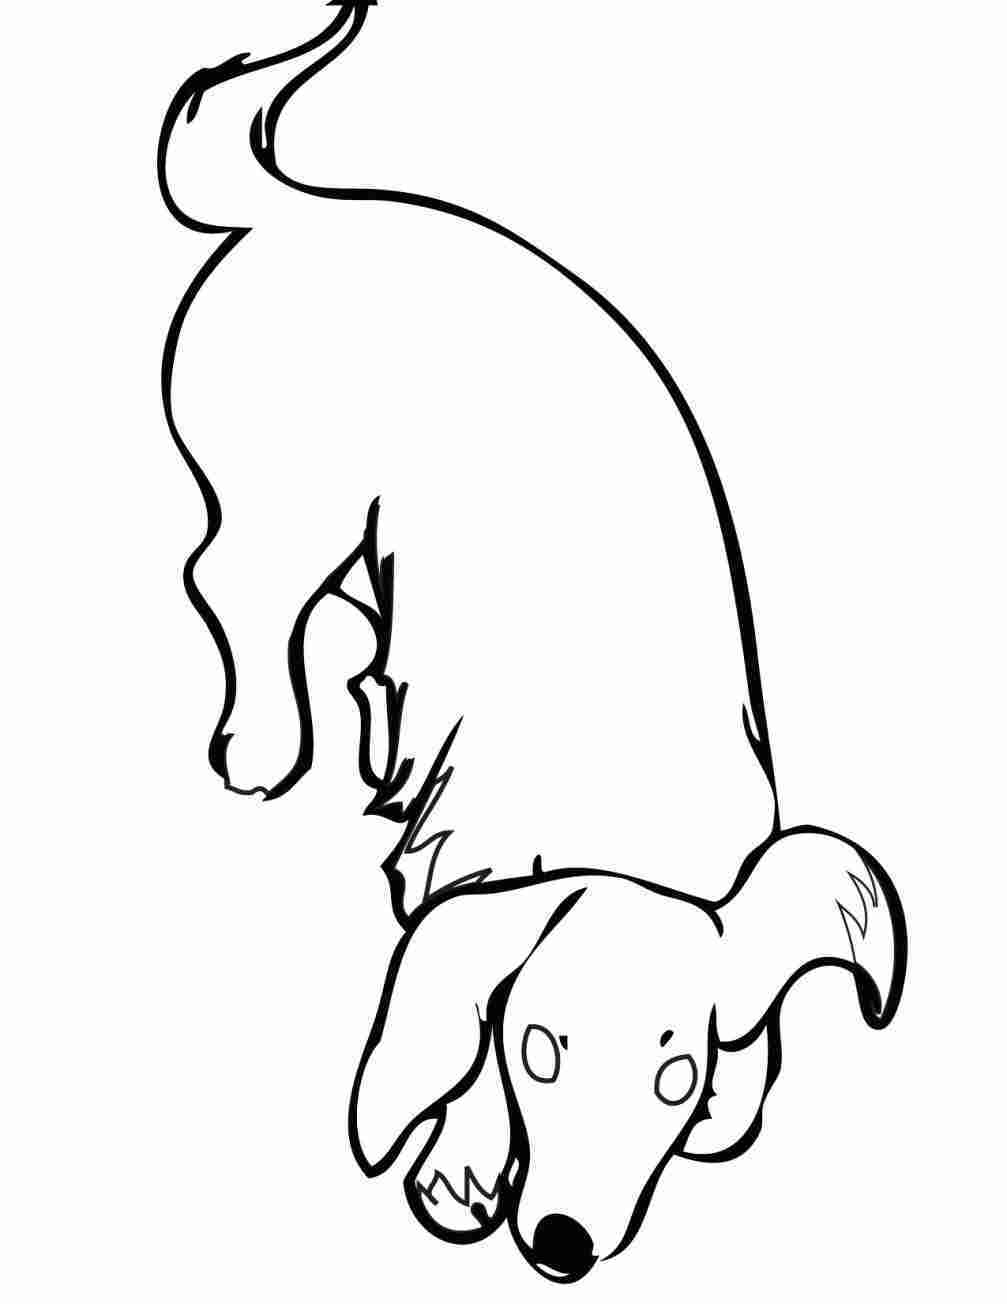 weiner dog coloring pages racing dachshund line art puppy coloring pages dog coloring weiner pages dog